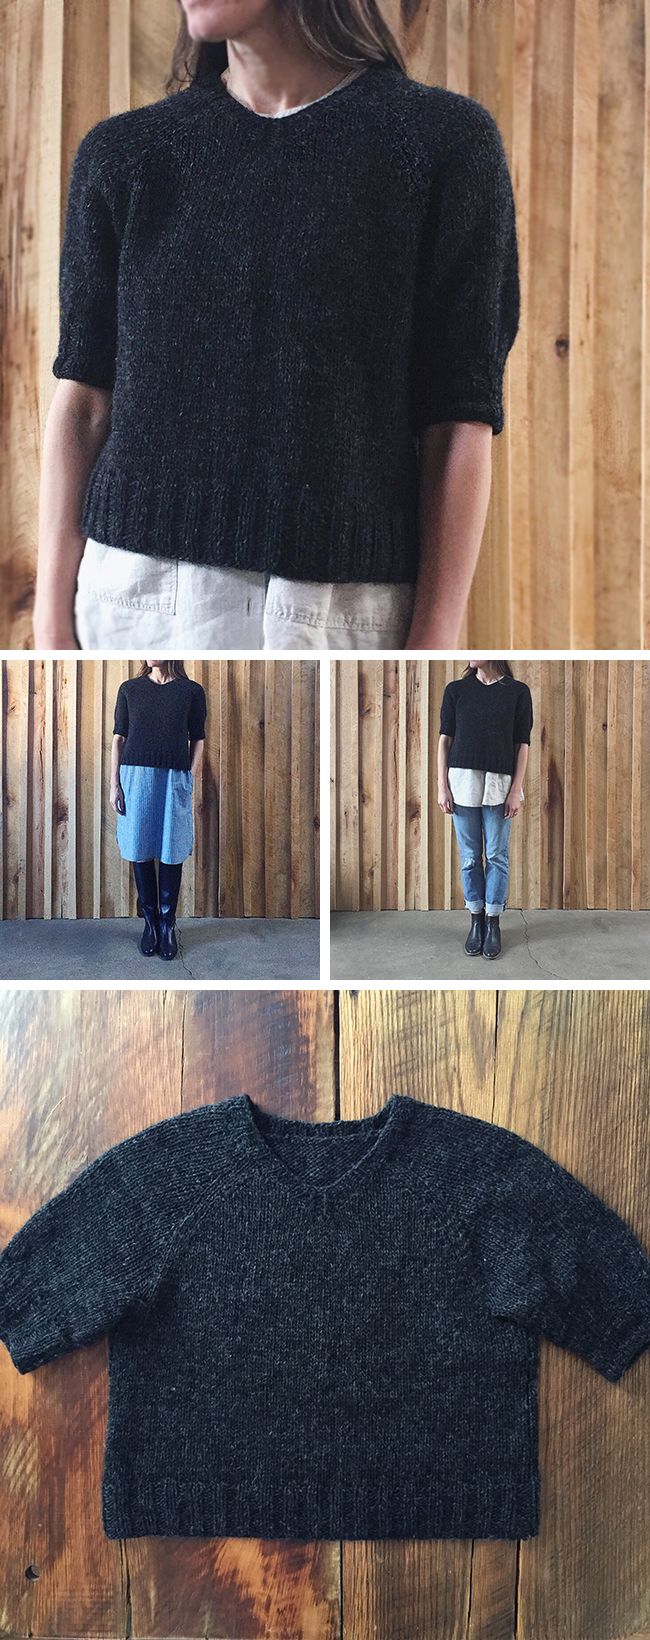 KTFO-2016.3 : Quick black raglan sweater recipe